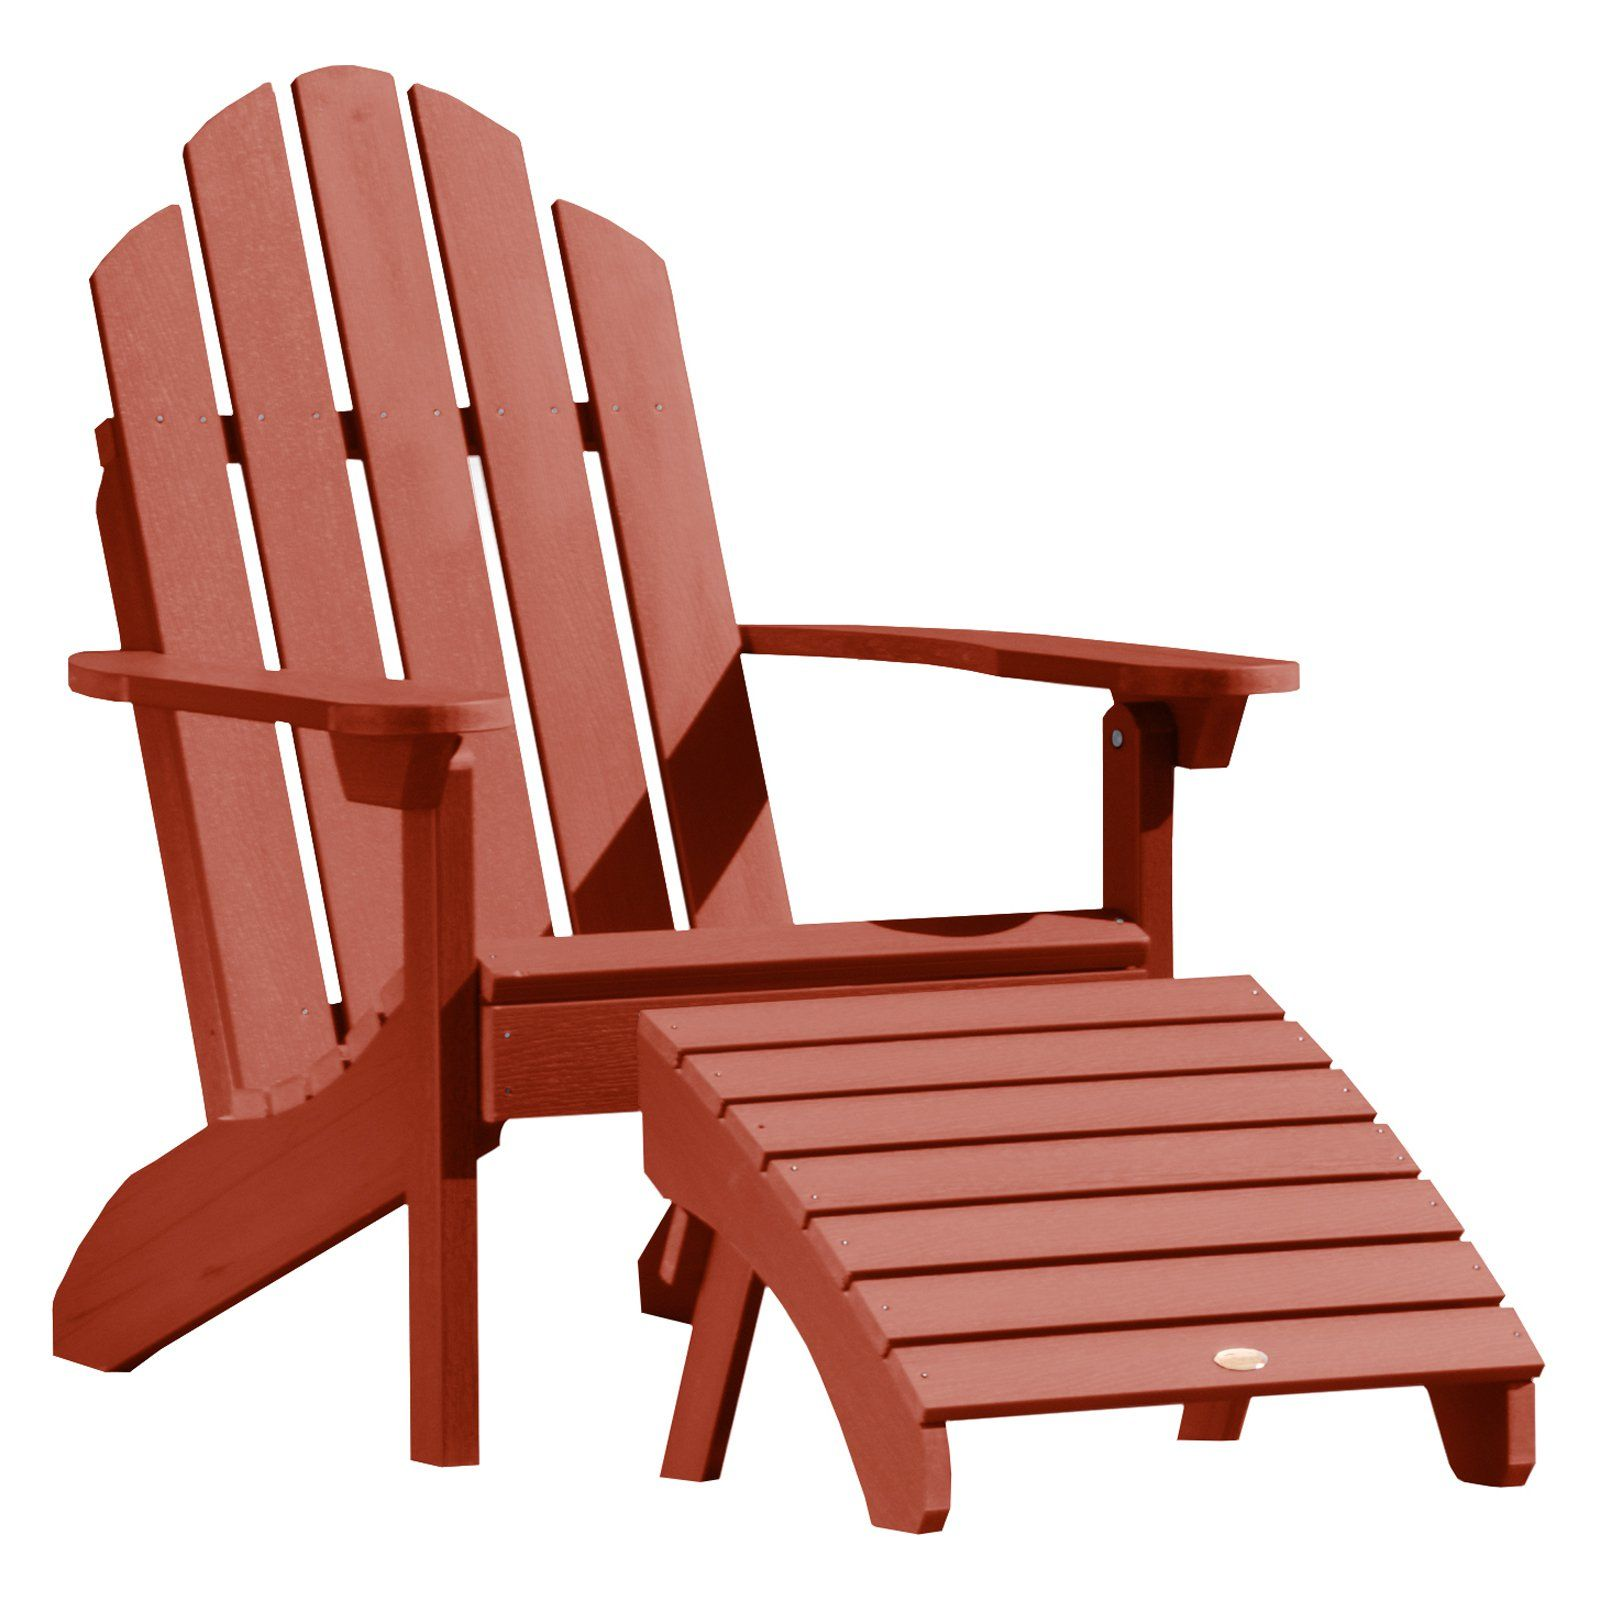 Fine Outdoor Highwood Usa Classic Westport Adirondack Chair With Squirreltailoven Fun Painted Chair Ideas Images Squirreltailovenorg